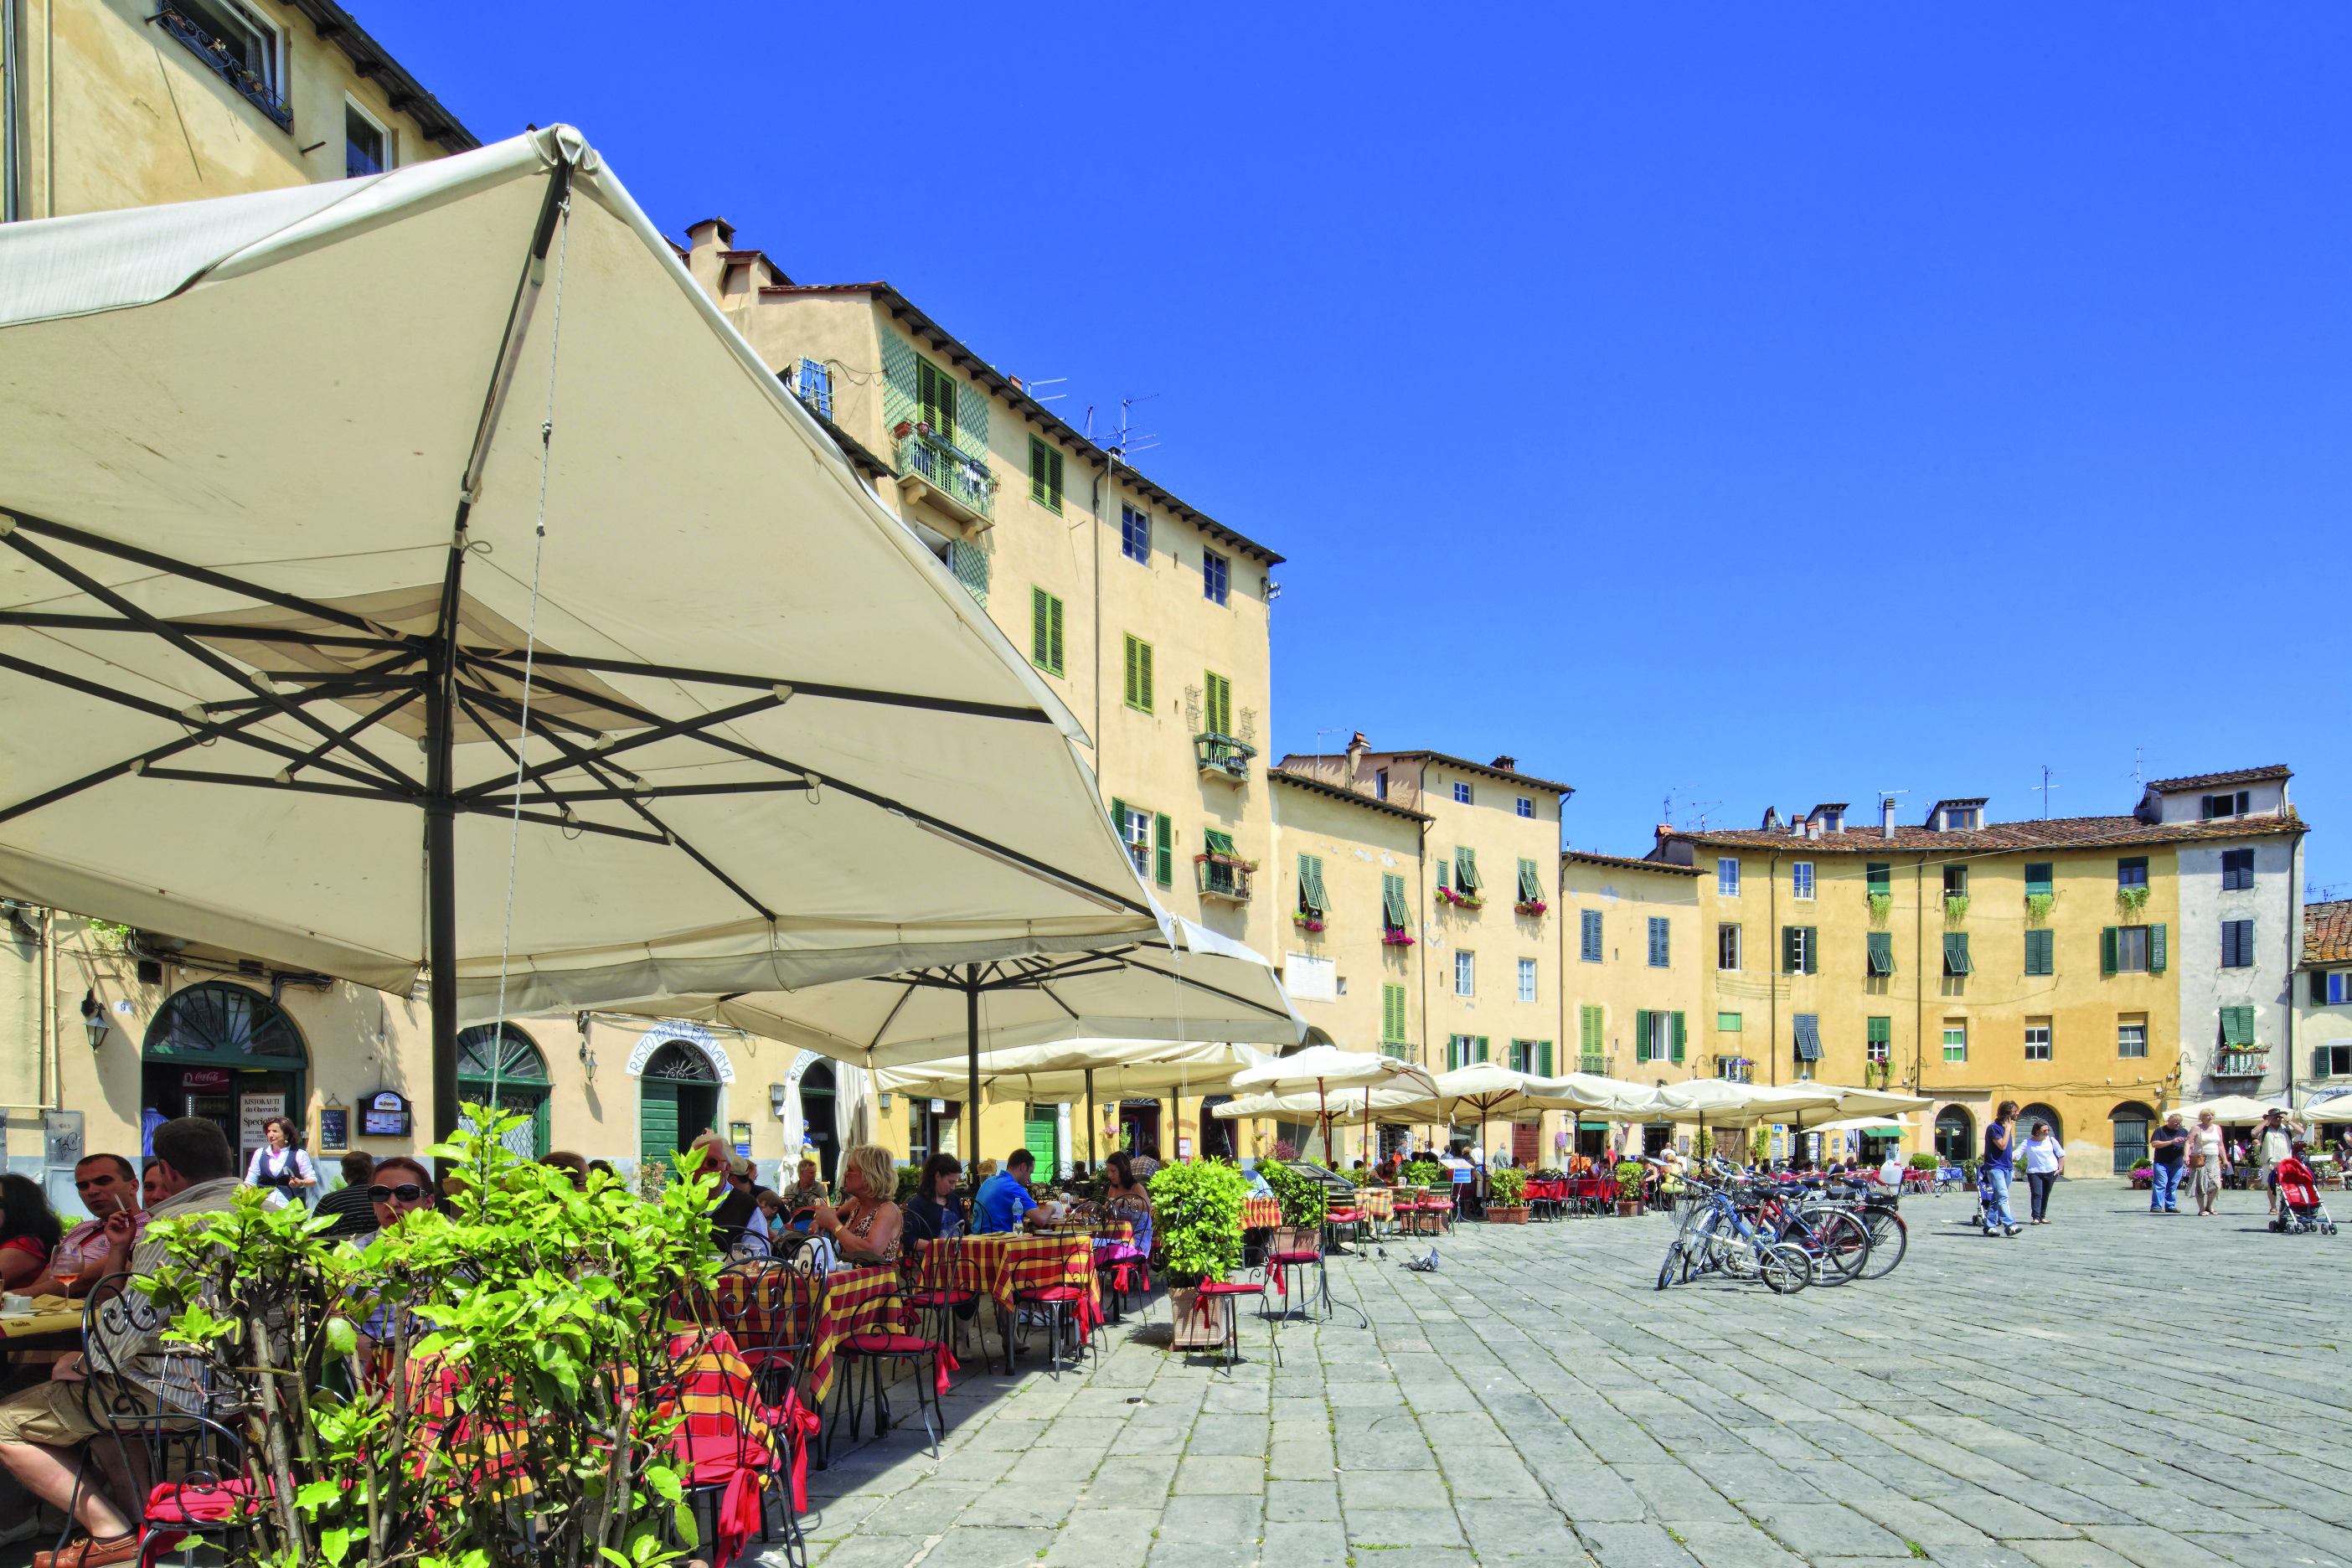 Italy, Tuscany, Lucca district, Lucca, Mediterranean area, Piazza dell'Anfiteatro